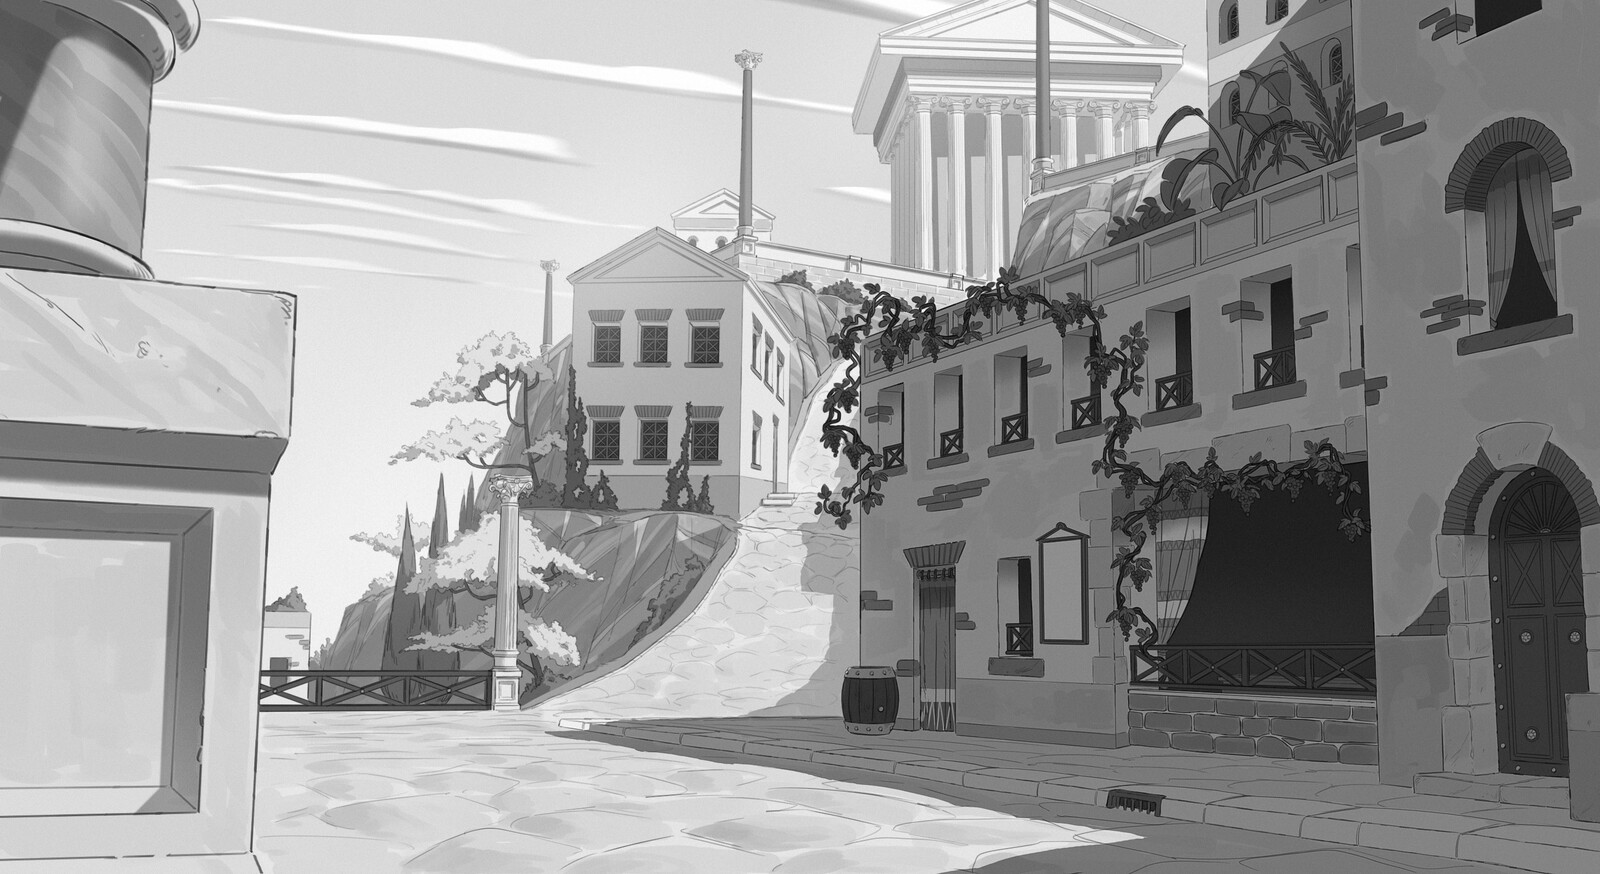 Concept of the streets of Constantinopolis, searching for the right feeling.